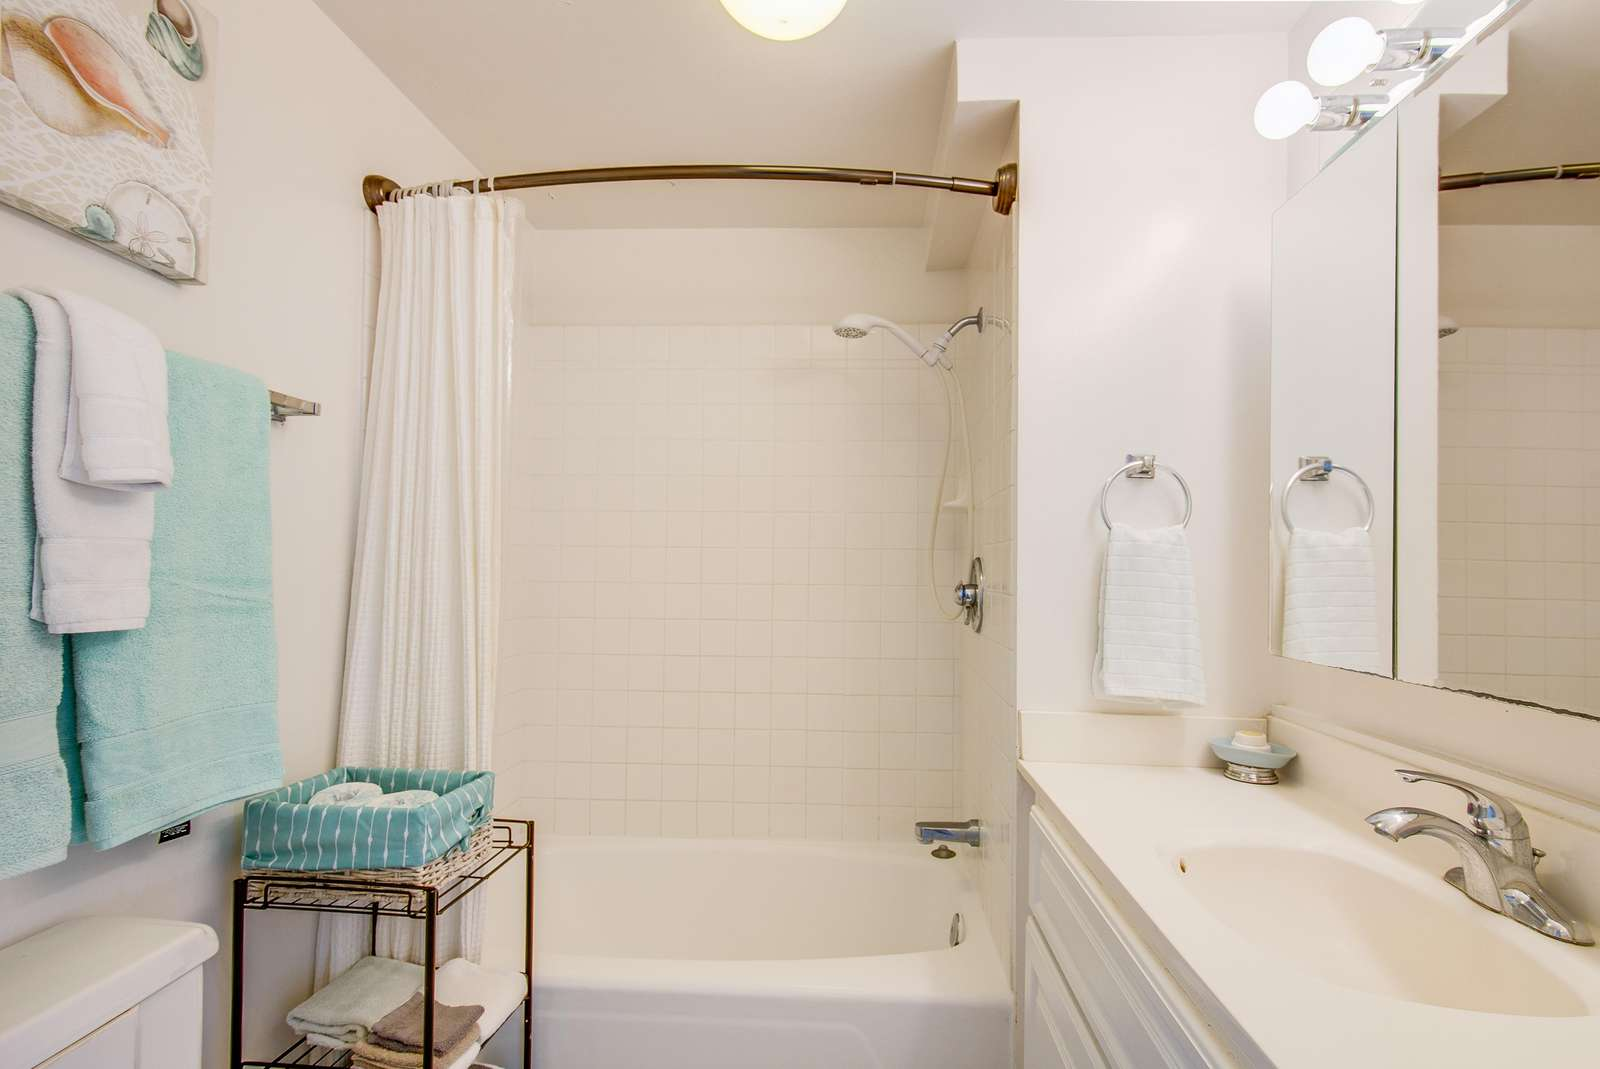 Bright and clean bathroom